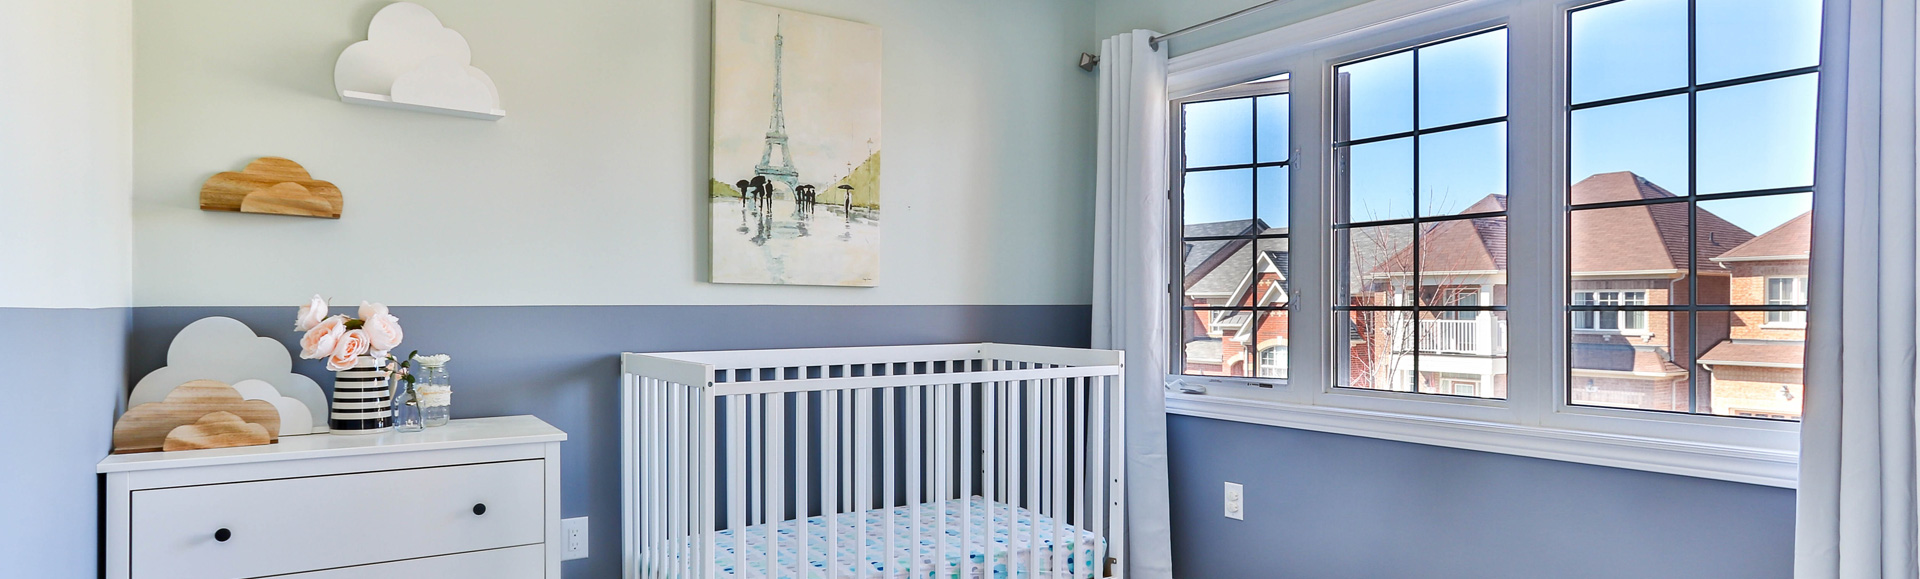 9 Must-Have Items for Designing the Perfect Baby Nursery